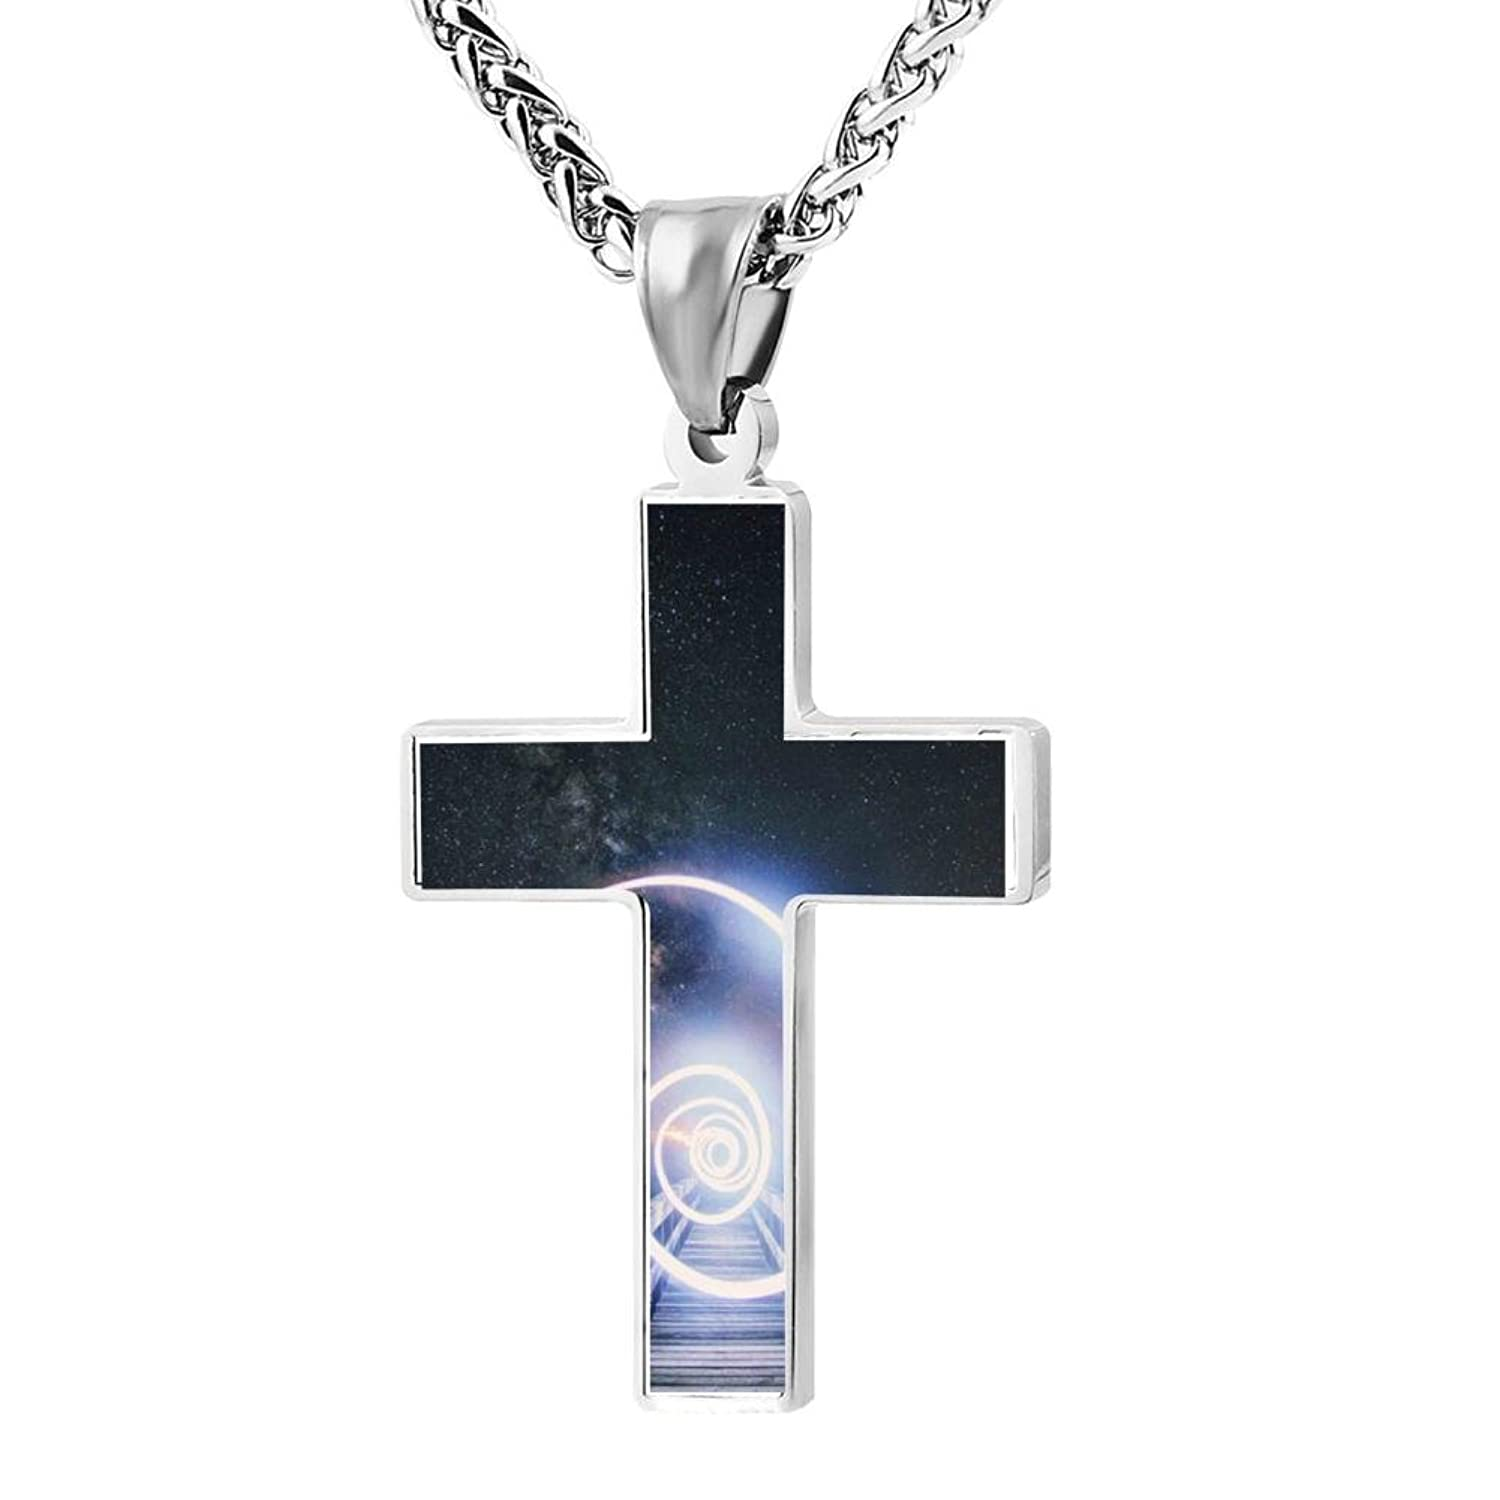 a56014a53 LUQeo Thunder Christianism Crucifix Necklace Cool God Jewelry Pendant